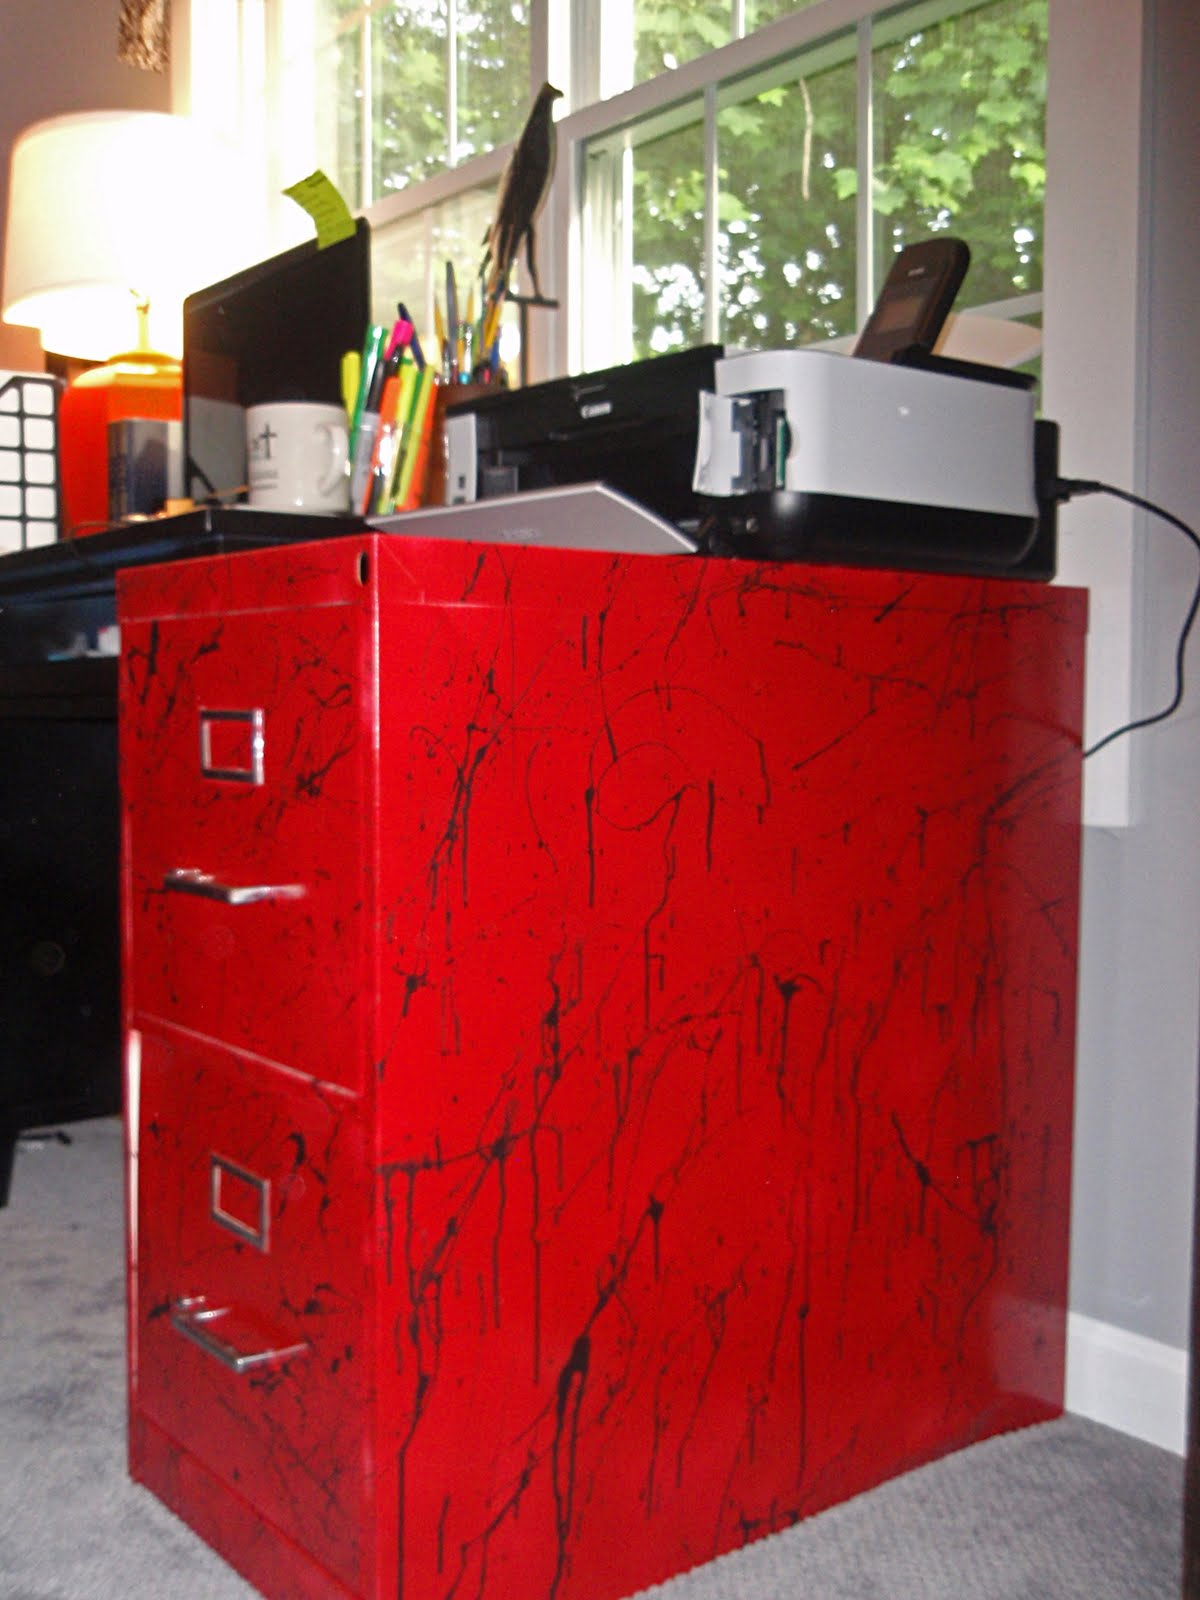 Not Only Do I Now Have A Place To Store Things, I Have A Place To Store  Things That Is Red, Splattery And Hotter Than Wasabi. ANNNND It Is Metal ...